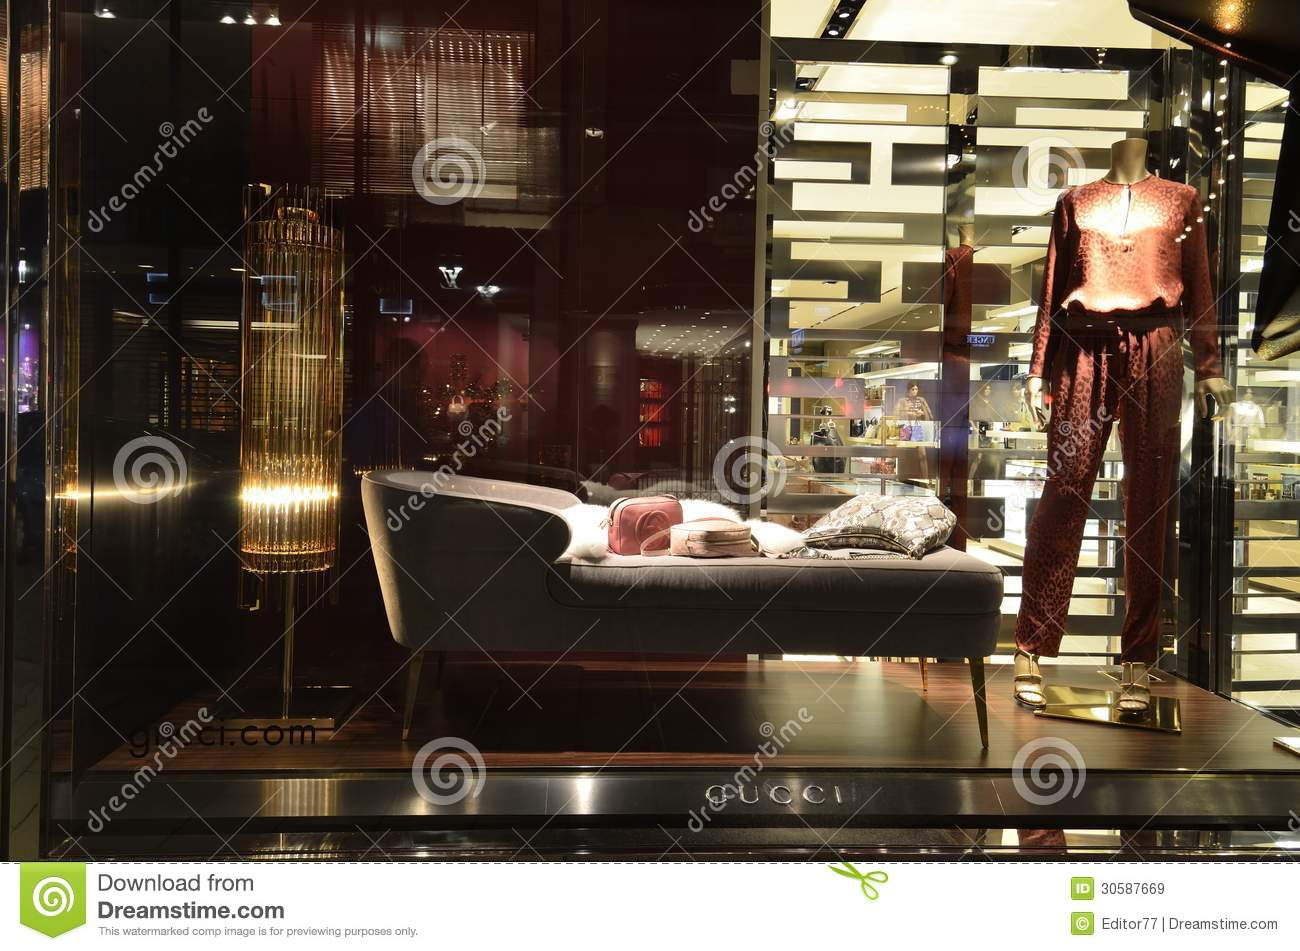 Most expensive clothing stores